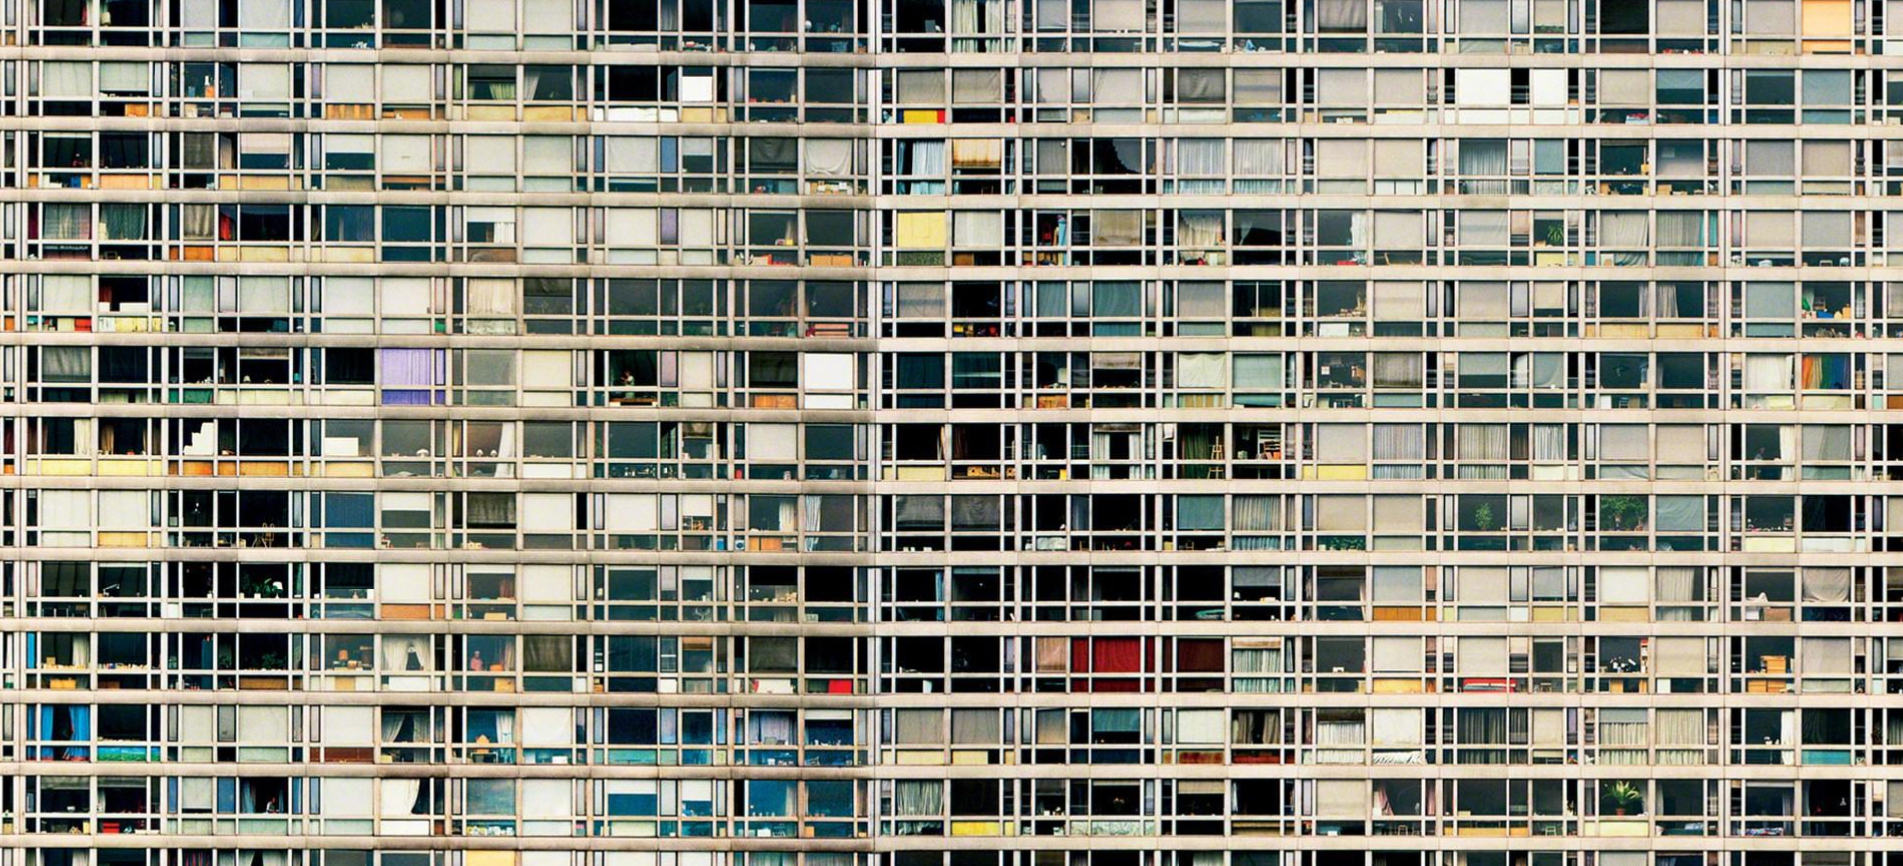 Andreas_Gursky_cropped.jpg